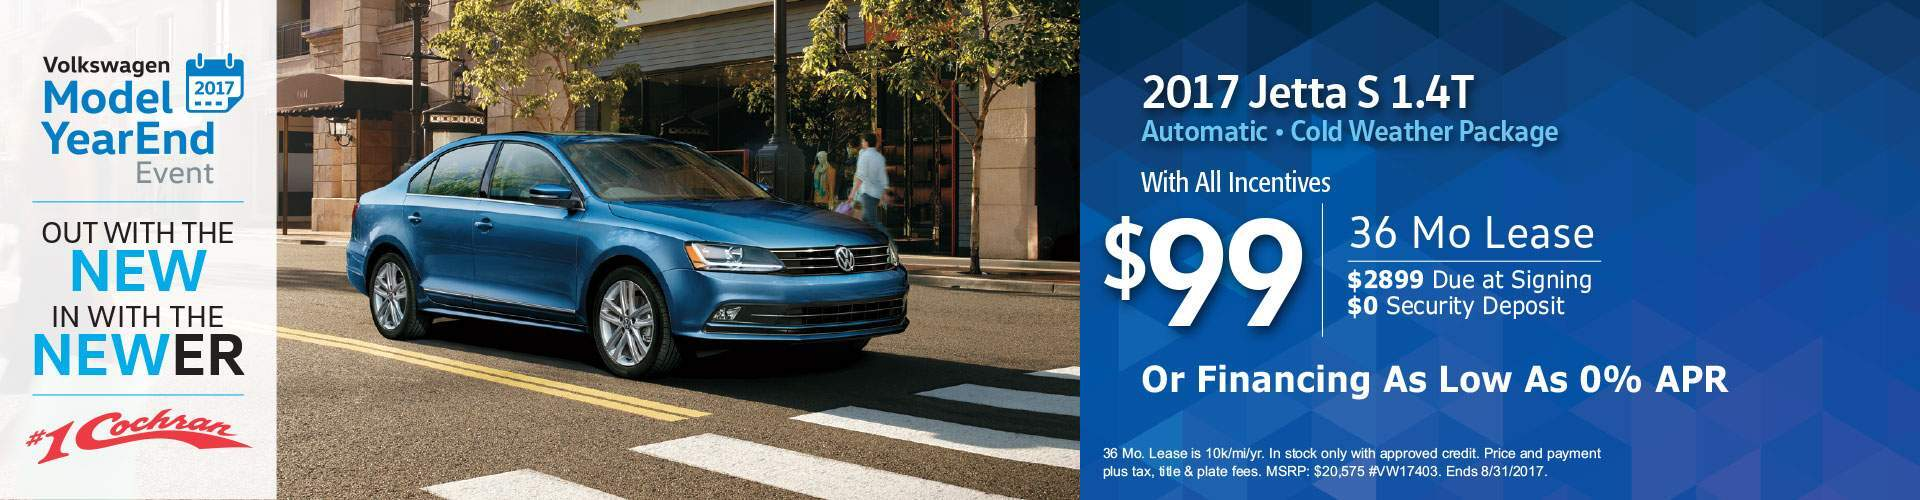 Volkswagen Dealership Wexford Pa Used Cars Volkswagen